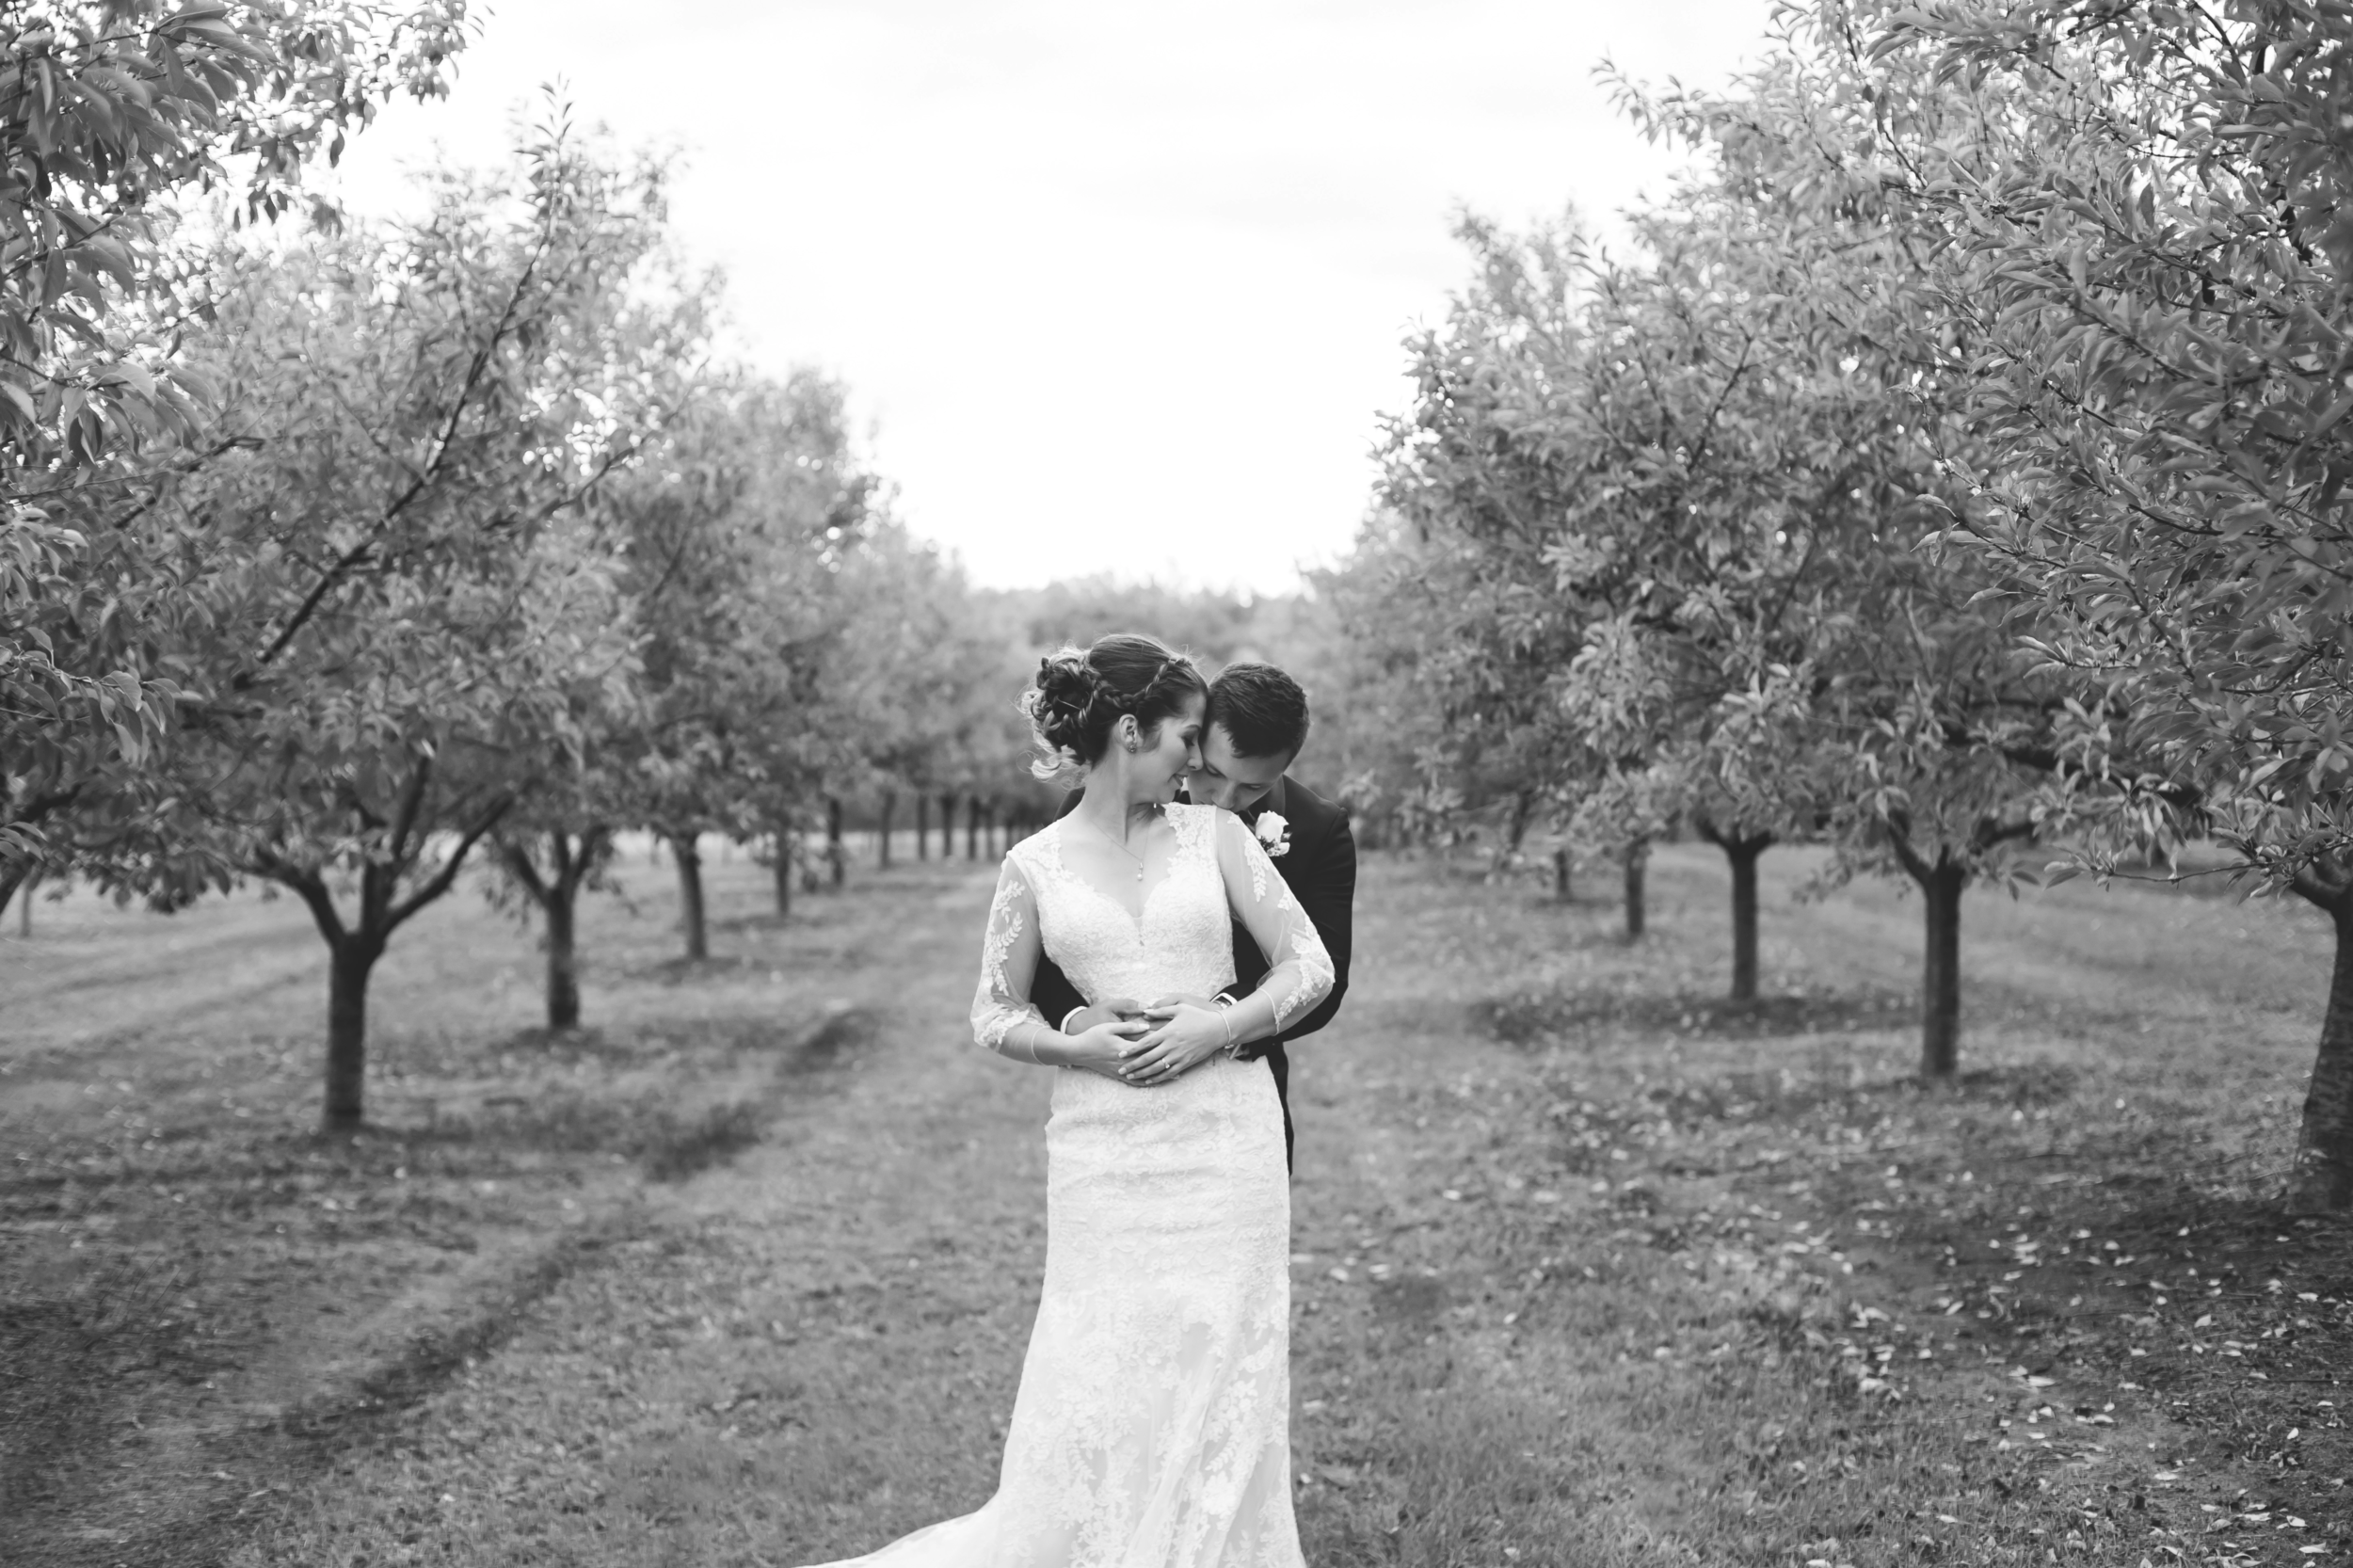 Wedding-Photos-Mount-Pleasant-Farm-Photographer-Wedding-Hamilton-GTA-Niagara-Oakville-Toronto-Moments-by-Lauren-Photography-Photo-Image-20.png